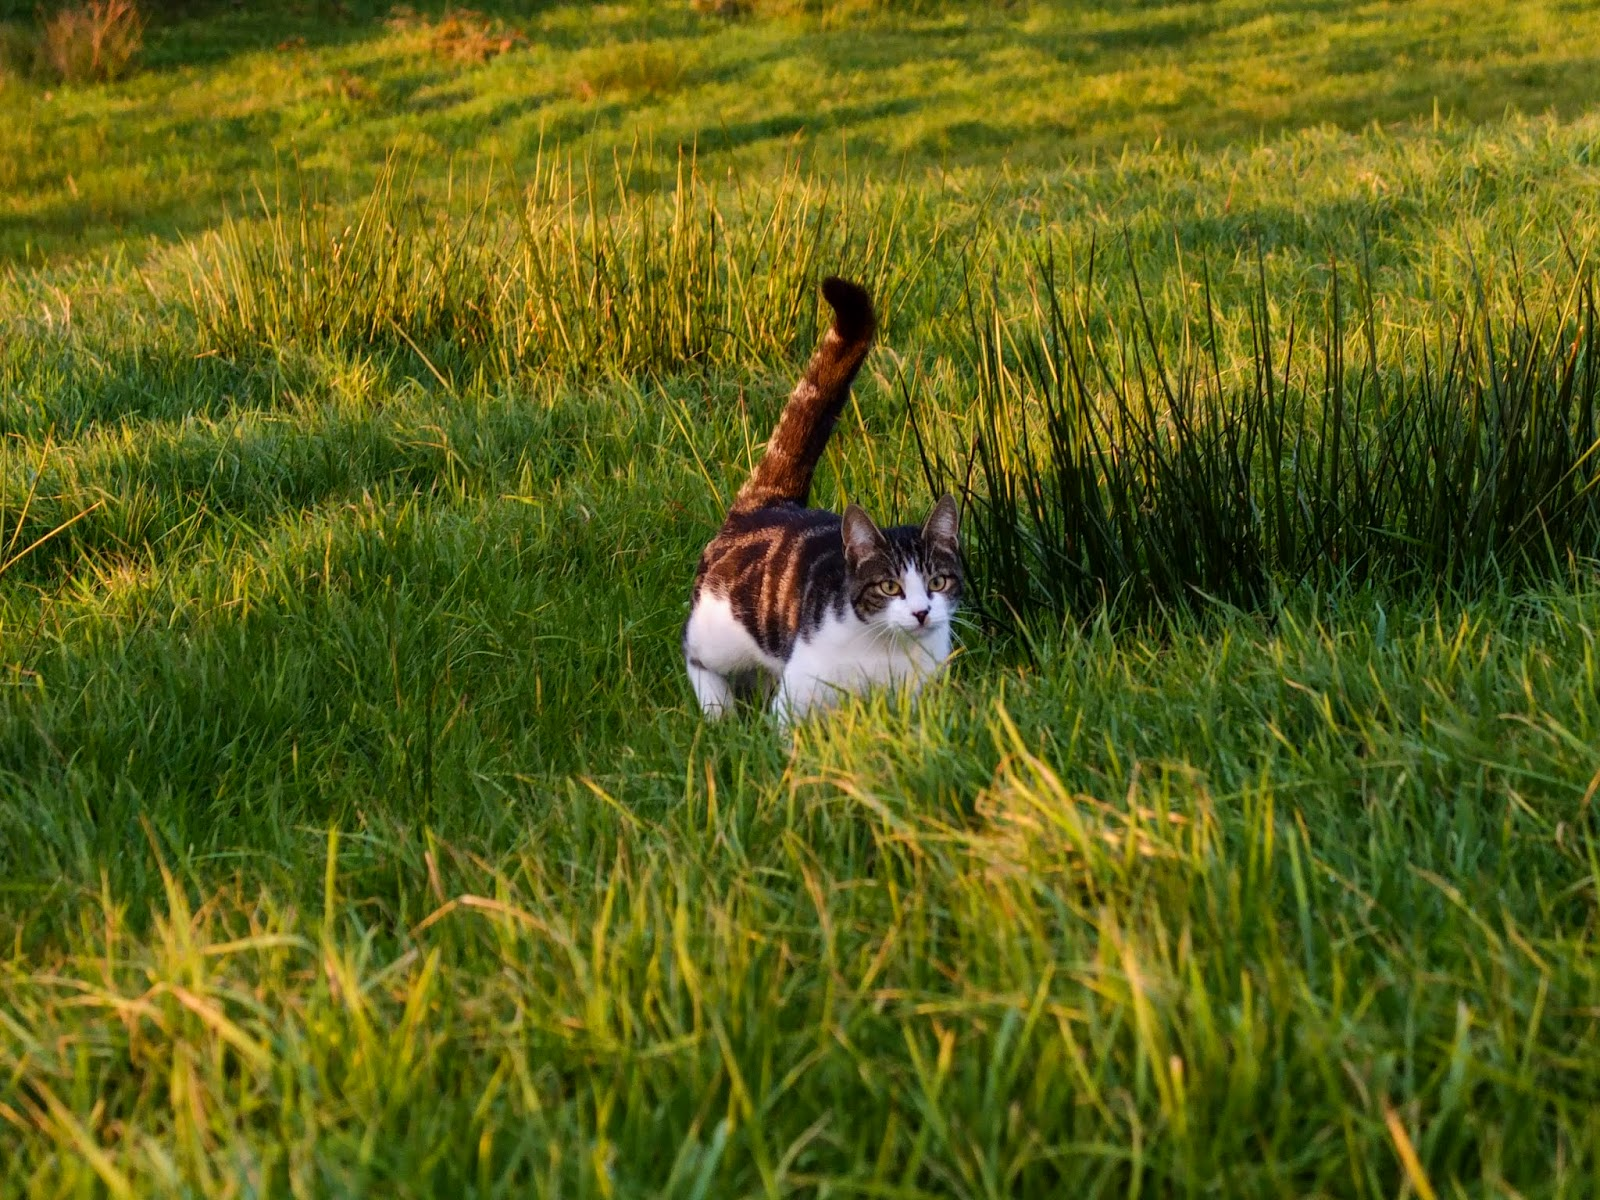 A white and brindle cat running through the grass with her tail up.